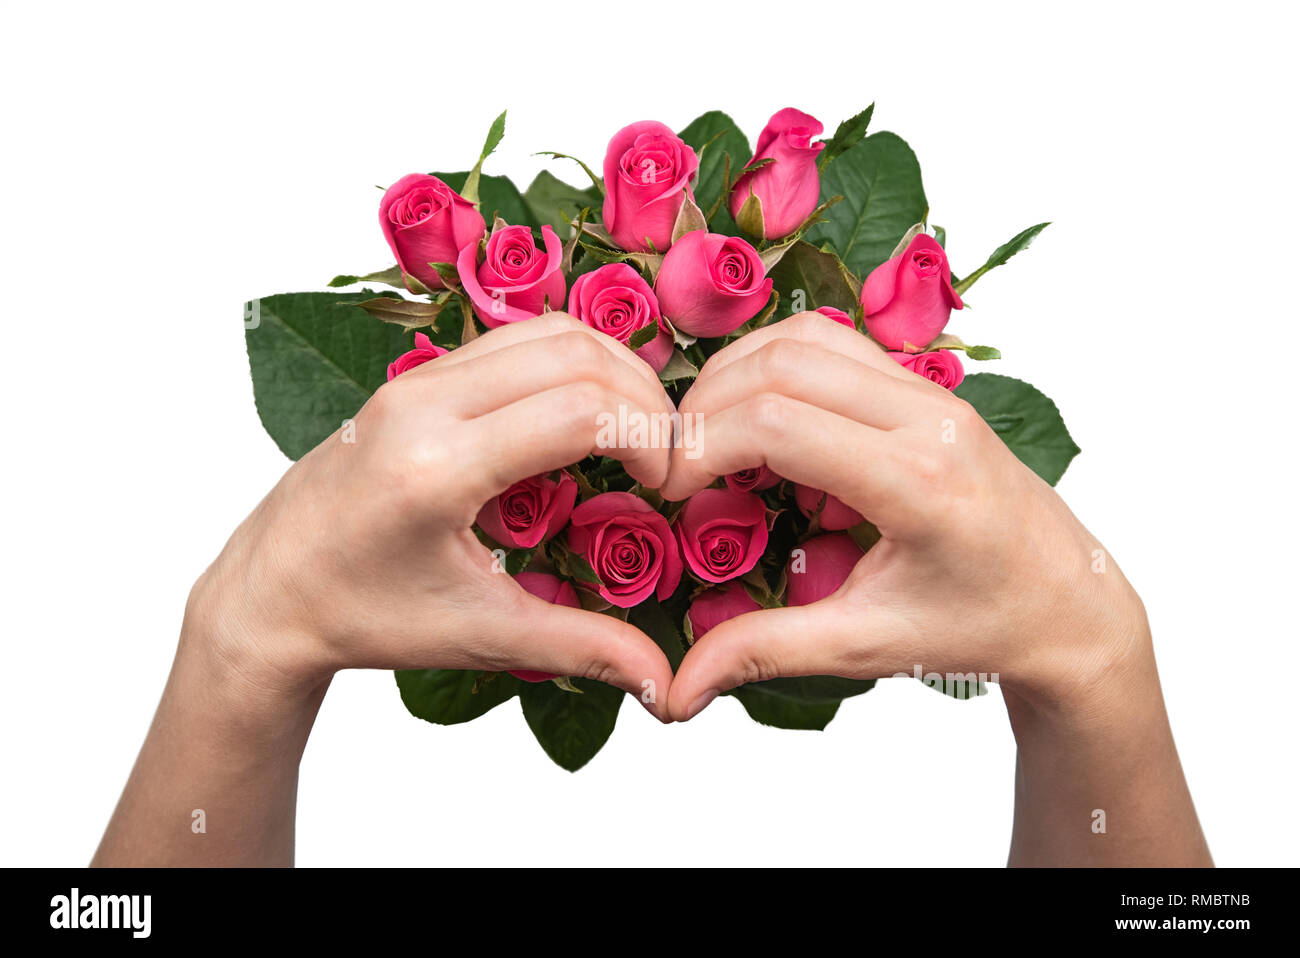 Women's hands with a bouquet of pink roses. - Stock Image